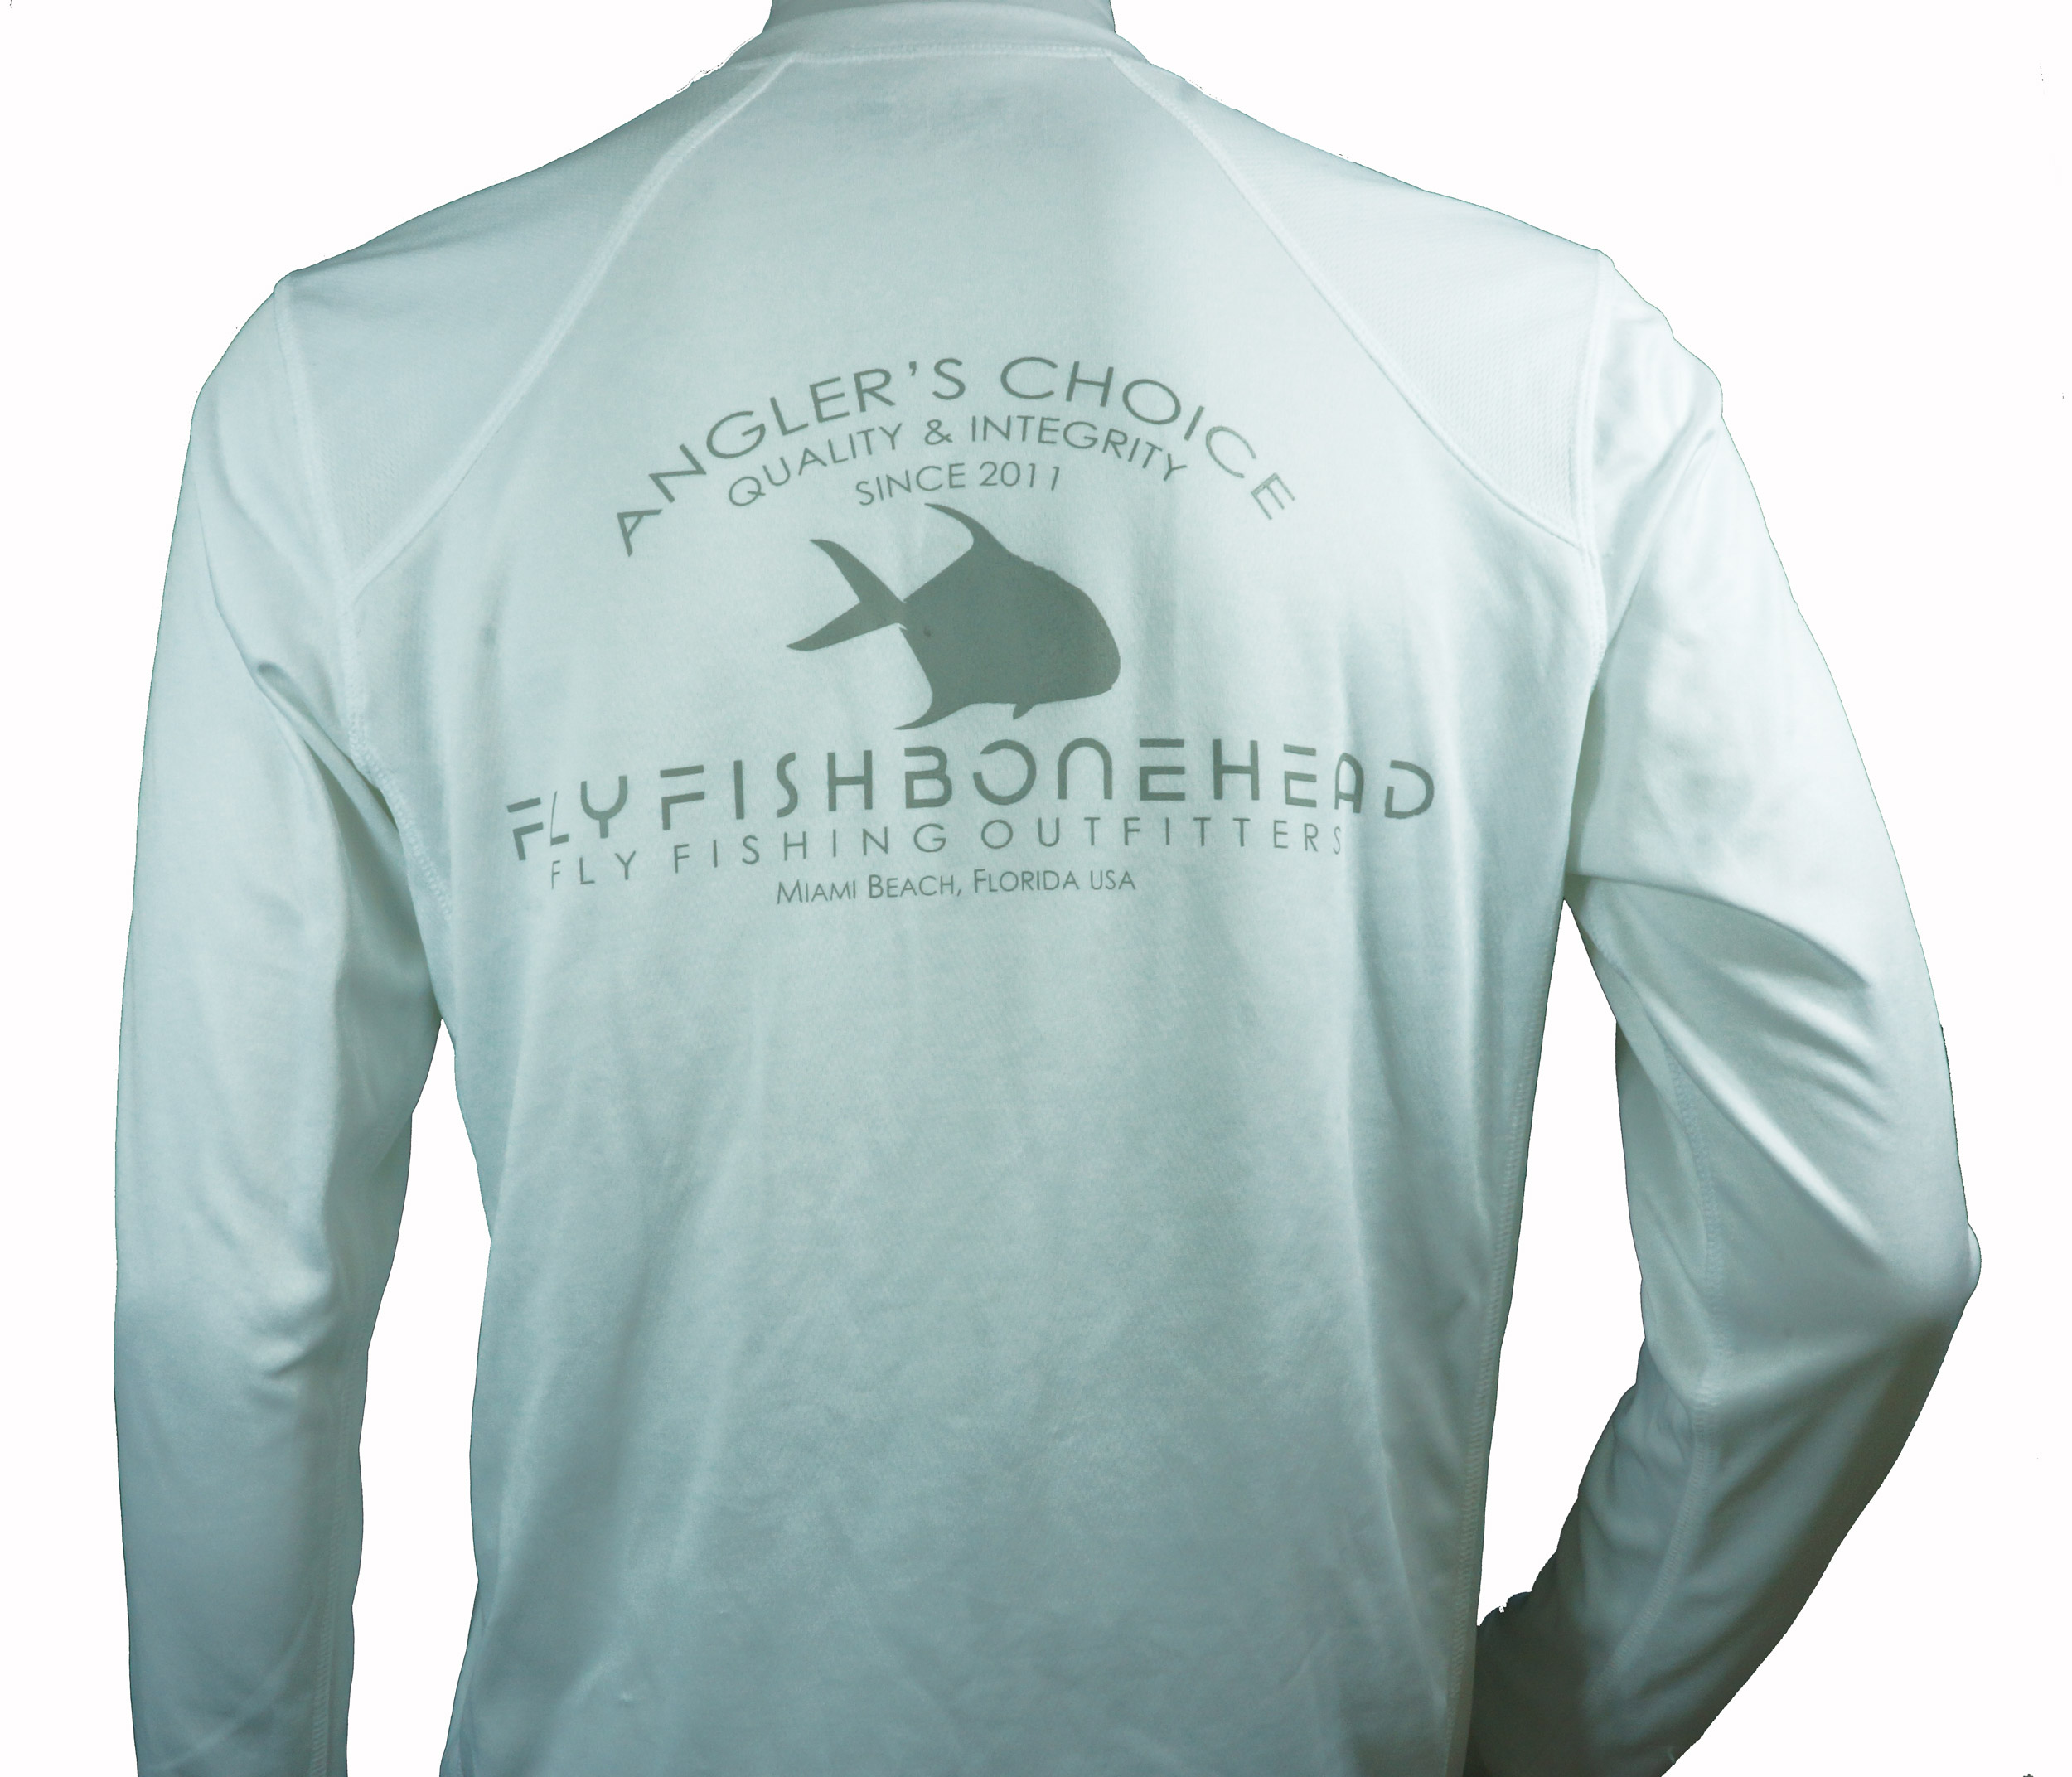 flyfishbonehead new balance tech shirt for fly fishing in the tropics